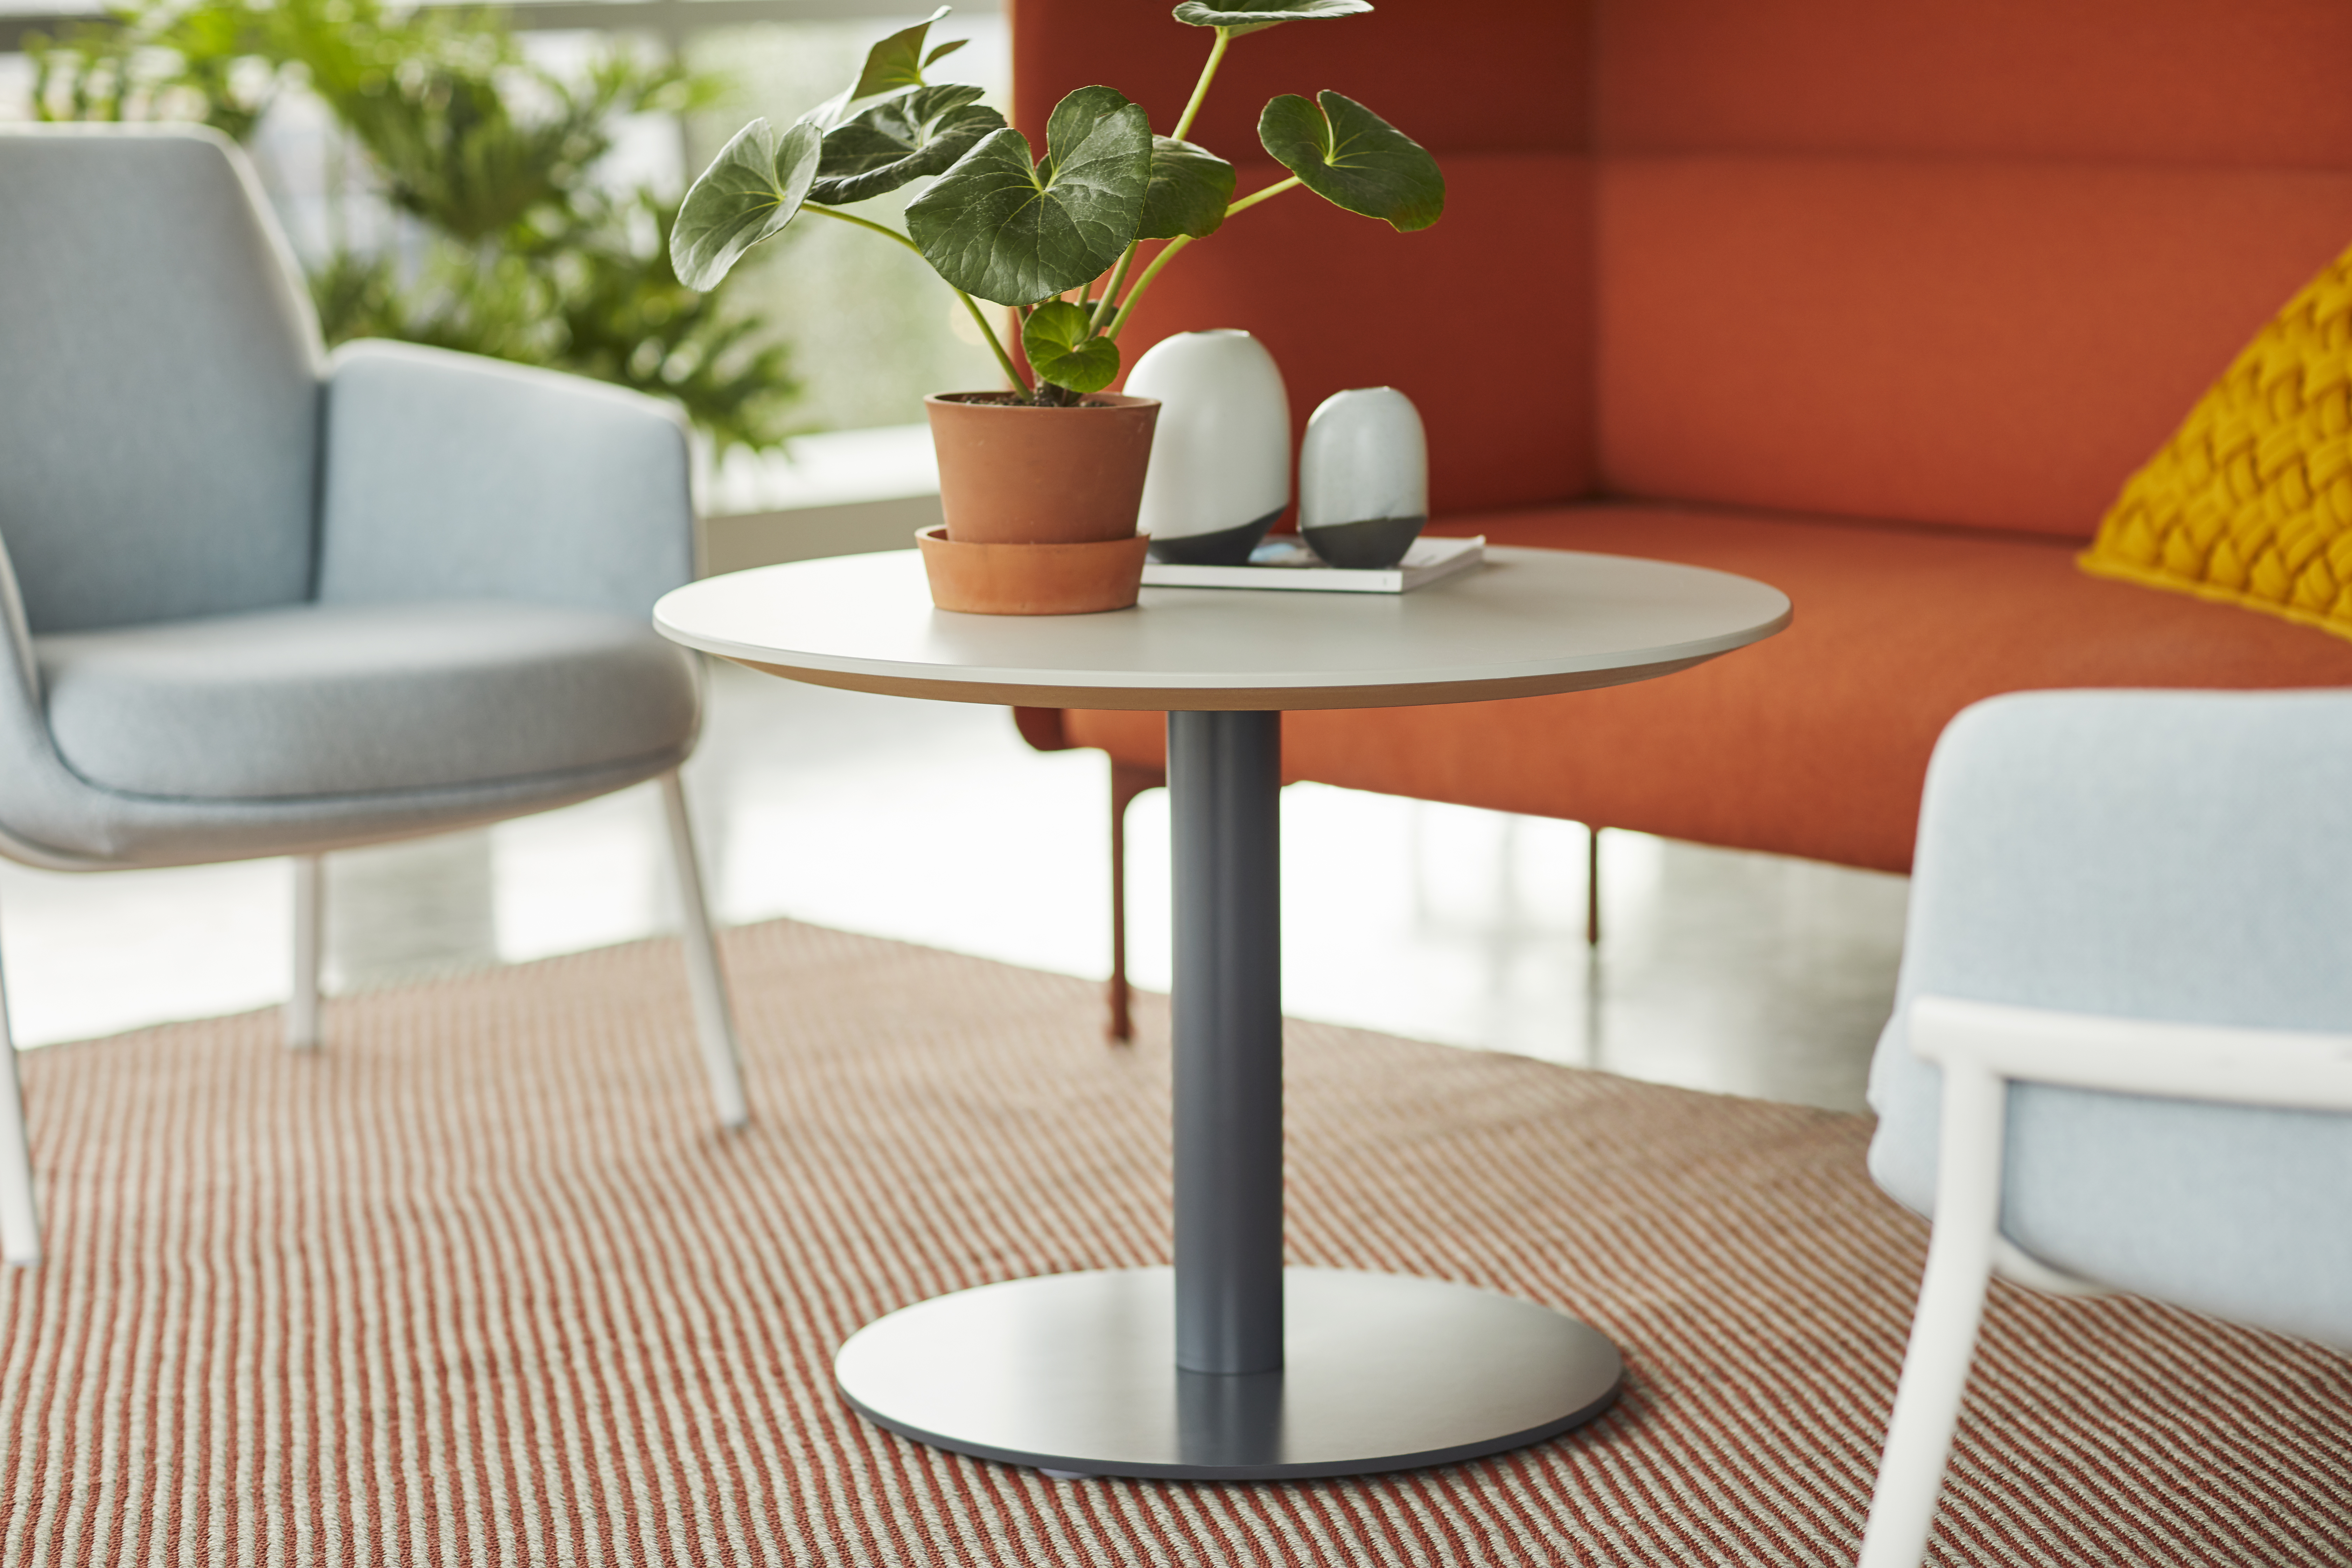 Planes Disc Base Side Table - Round. Poppy, Cabana Lounge and Diagonales Rug